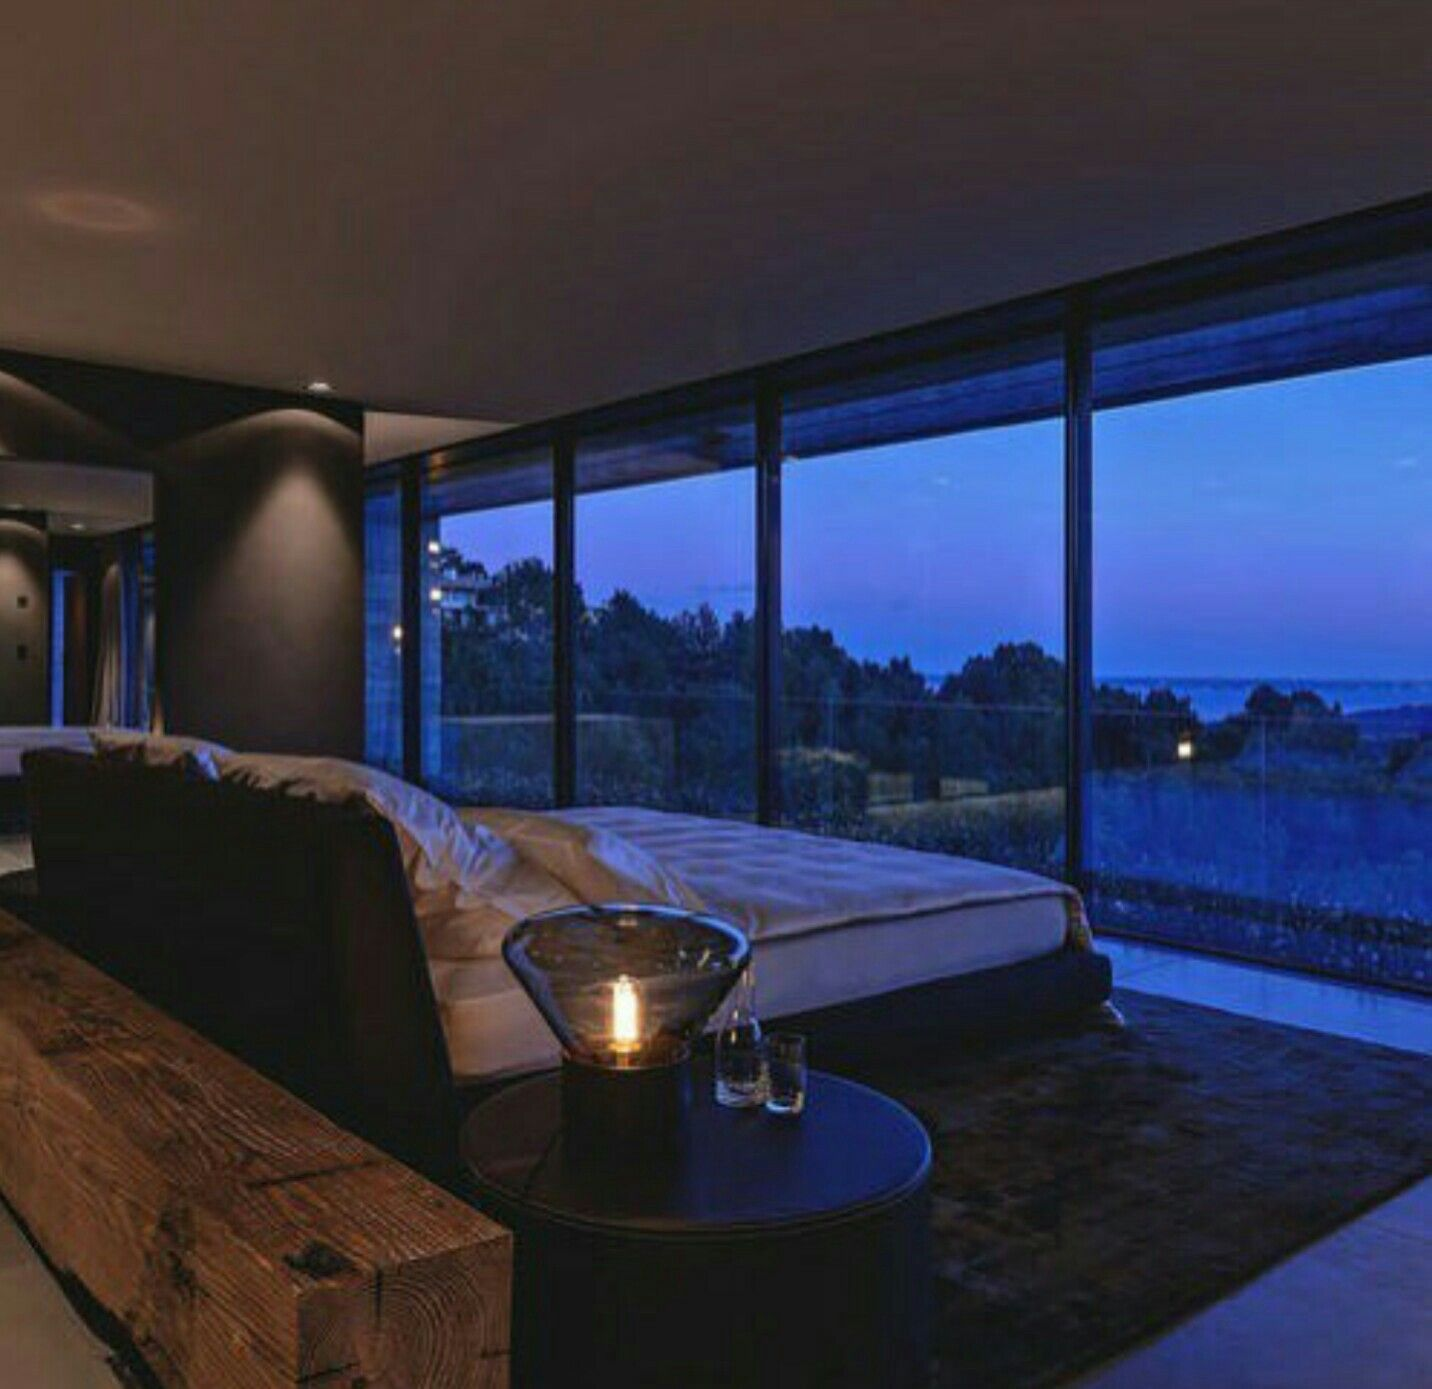 Bed with a view